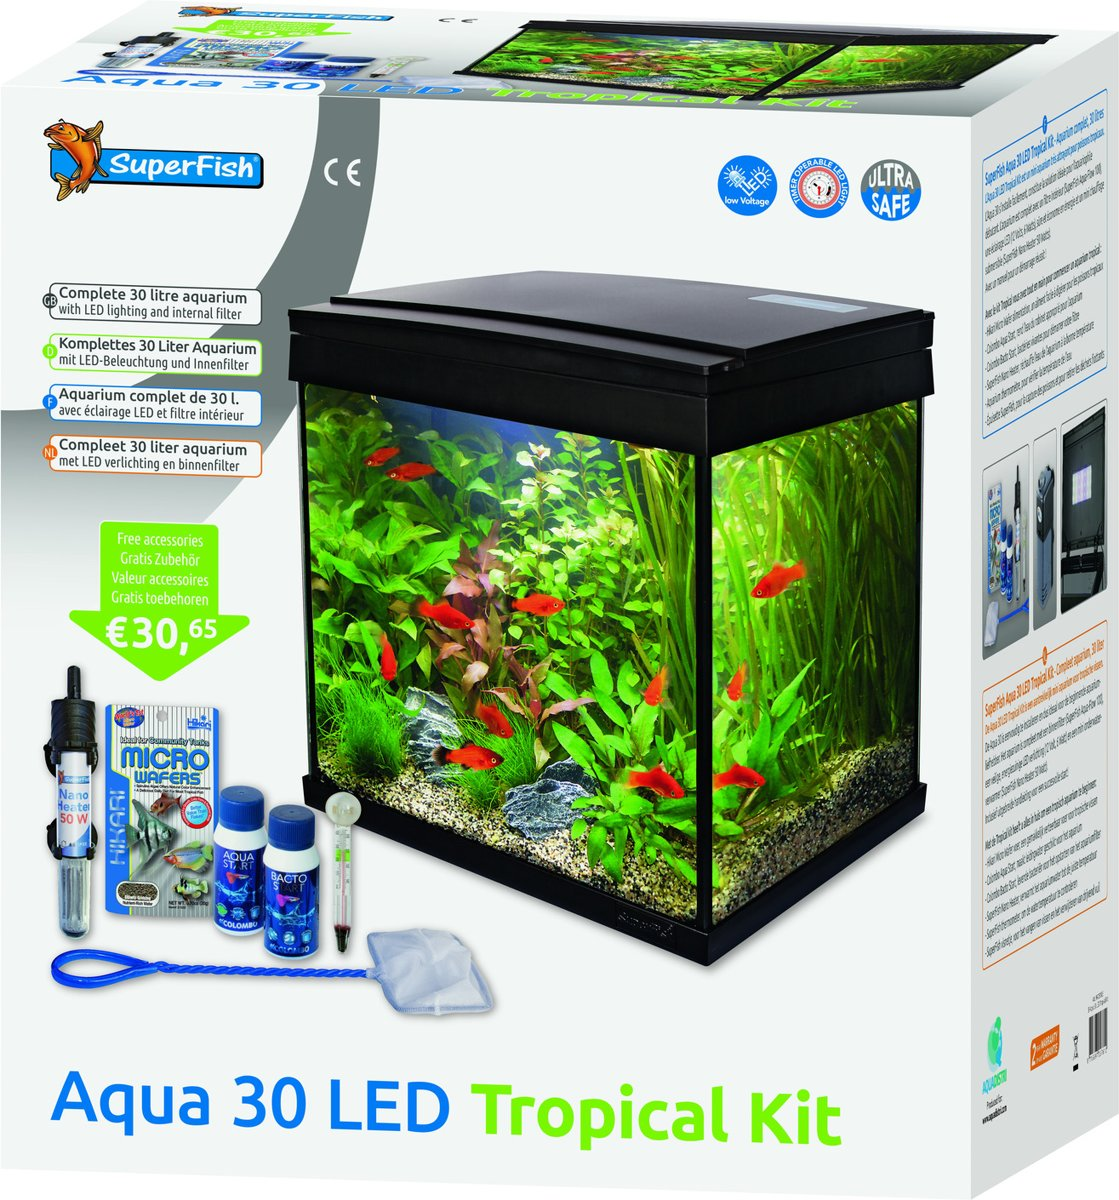 Aquarium Verlichting 30 Cm Superfish Aqua 30 Led Tropical Kit Aquarium Zwart 25 30l 36 X 23 X 39 Cm